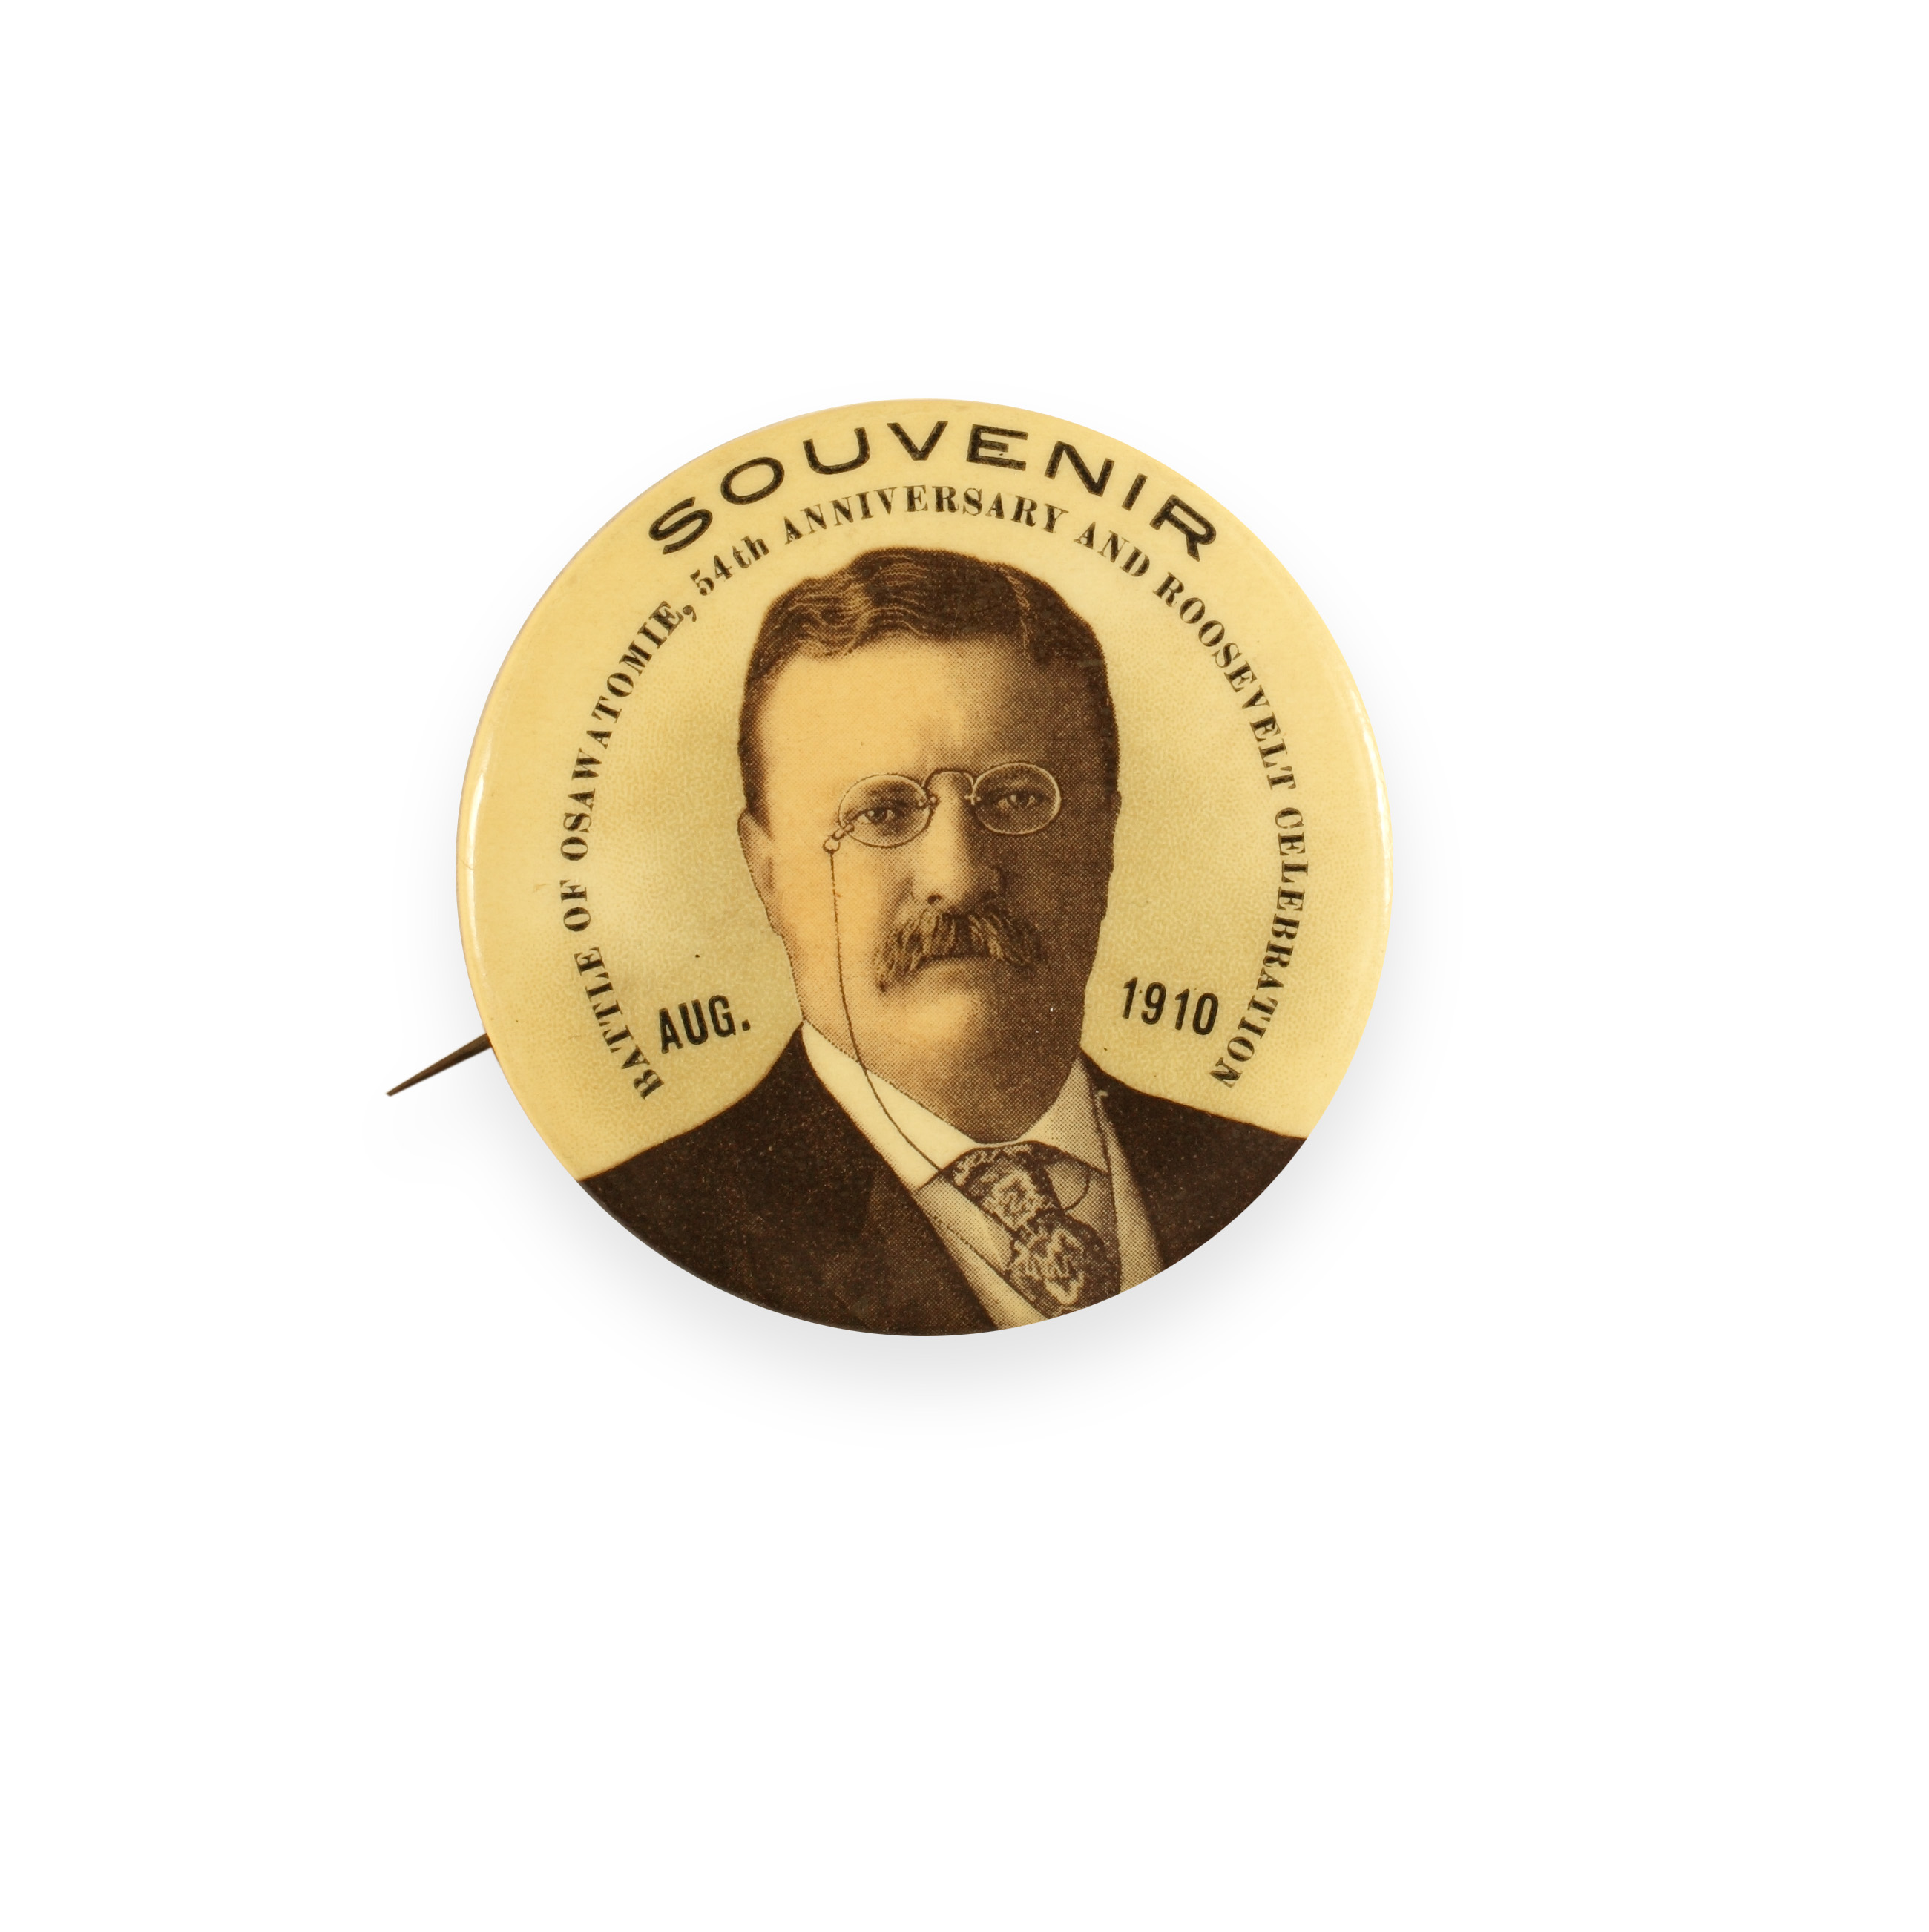 Souvenir button for Theodore Roosevelt's 1910 visit to Osawatomie